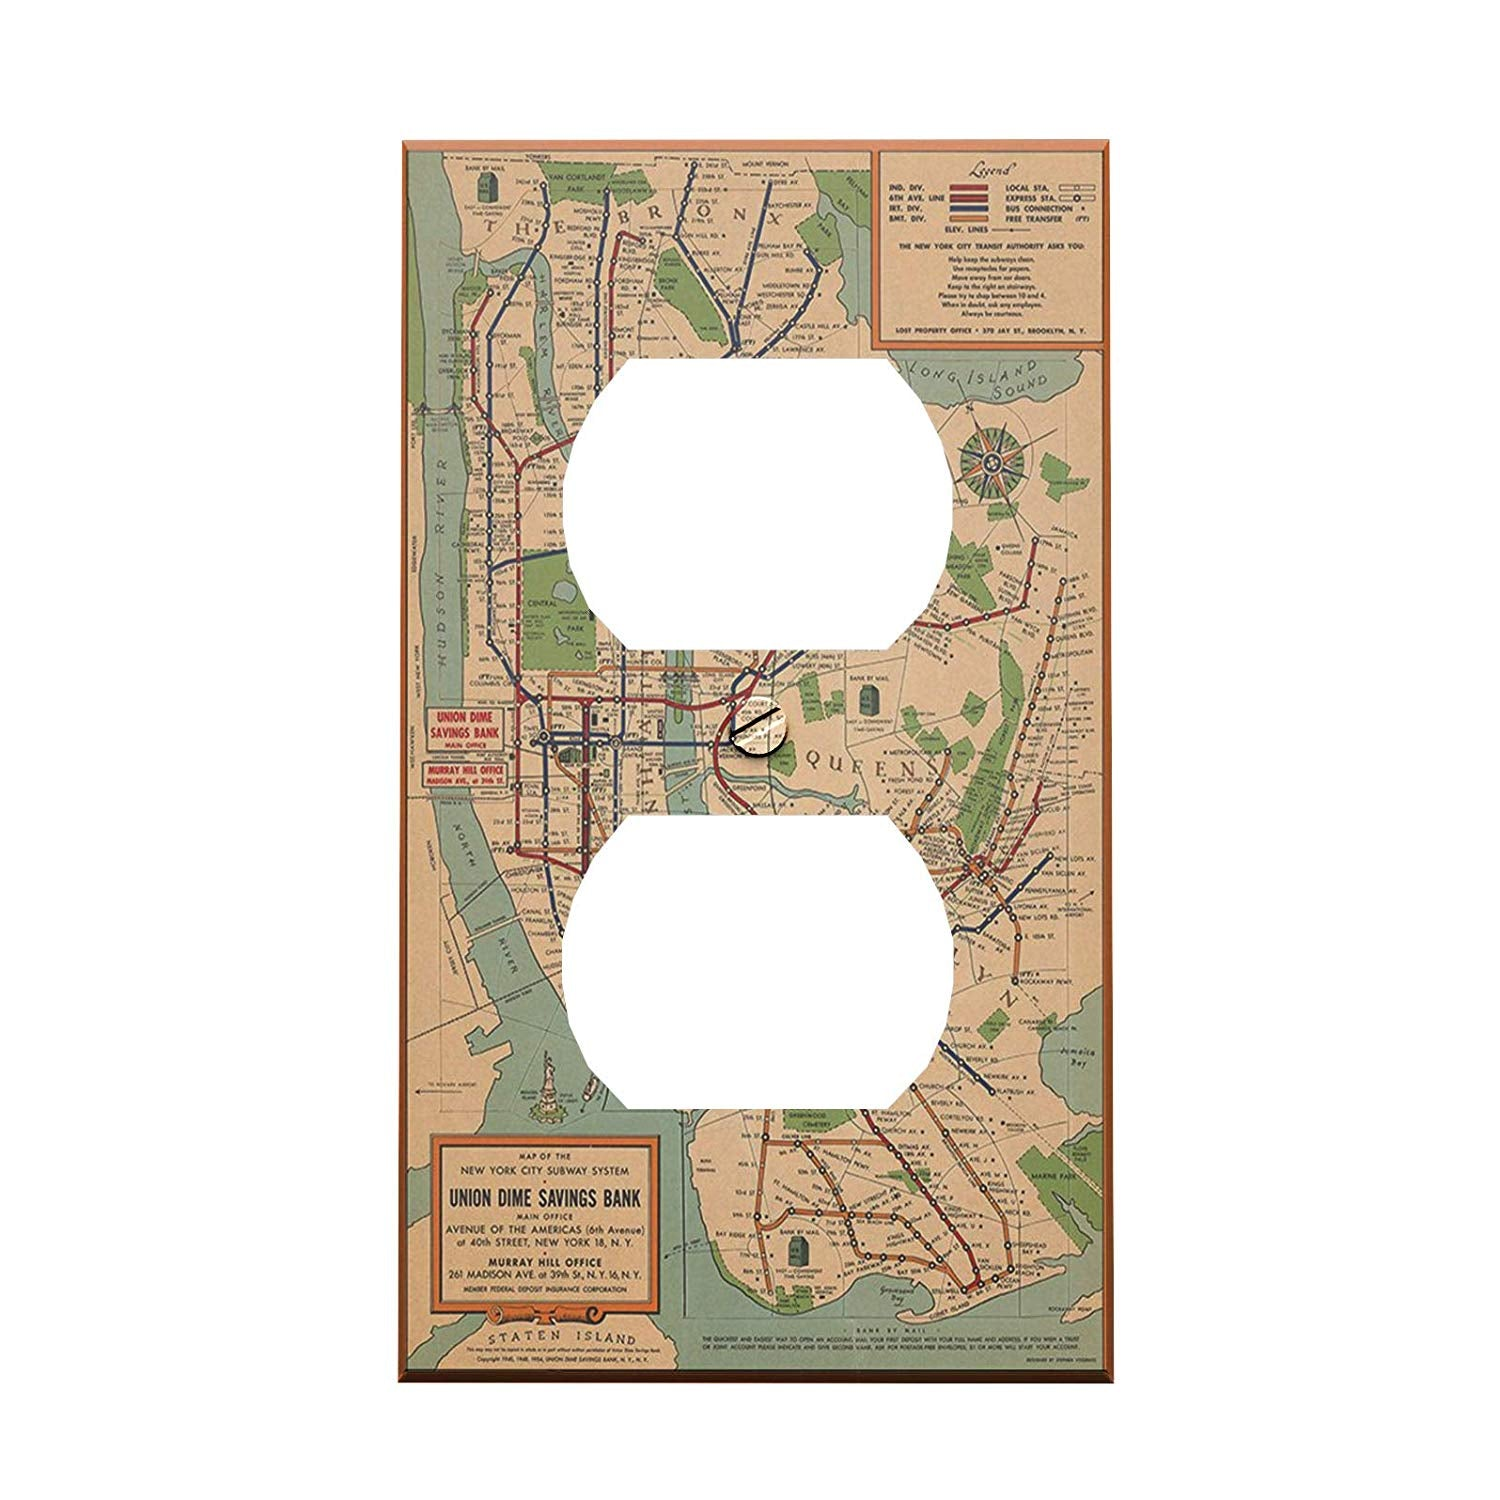 New York City Subway Map Wall Paper.Vintage Nyc Subway Map Outlet Cover Nyc Themed Wall Decor